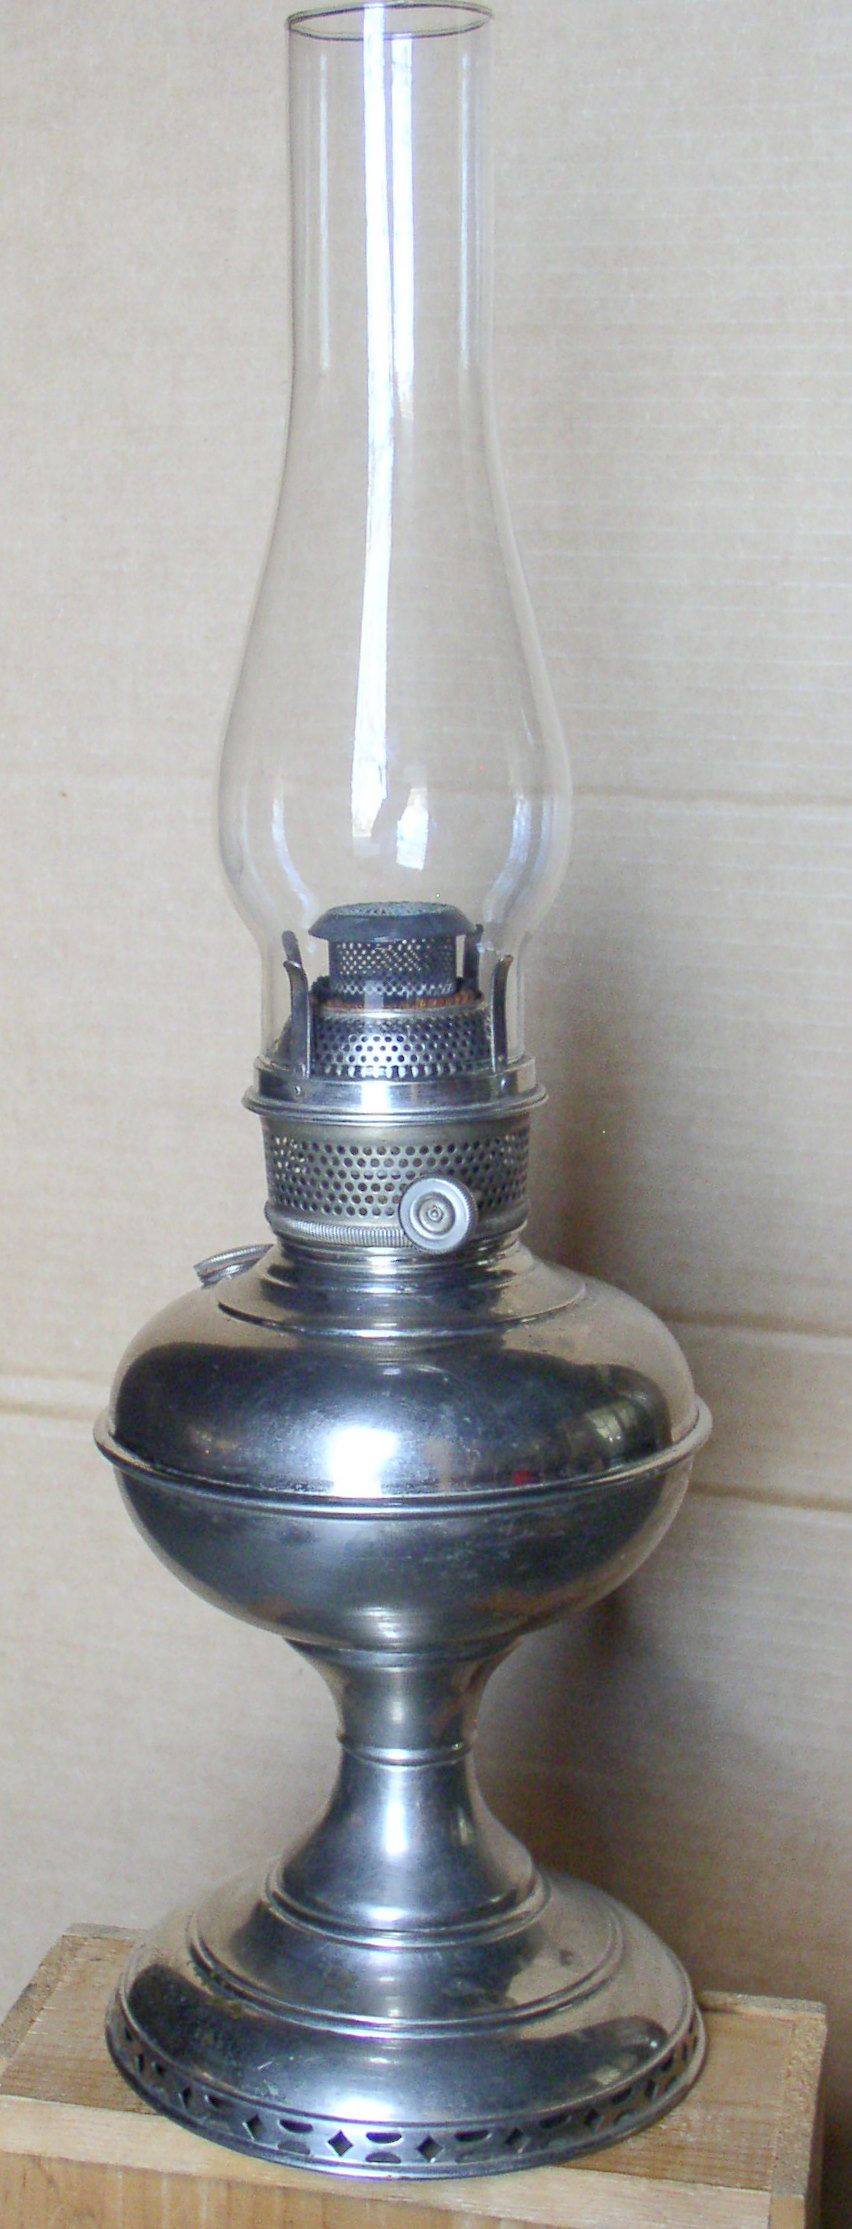 Plume Atwood 1 Naugatuck Antique Oil Lamps Pinterest Vintage 193039s Ge Table Fan Needs Rewiring Fans And Etsy Apothecary Lanterns